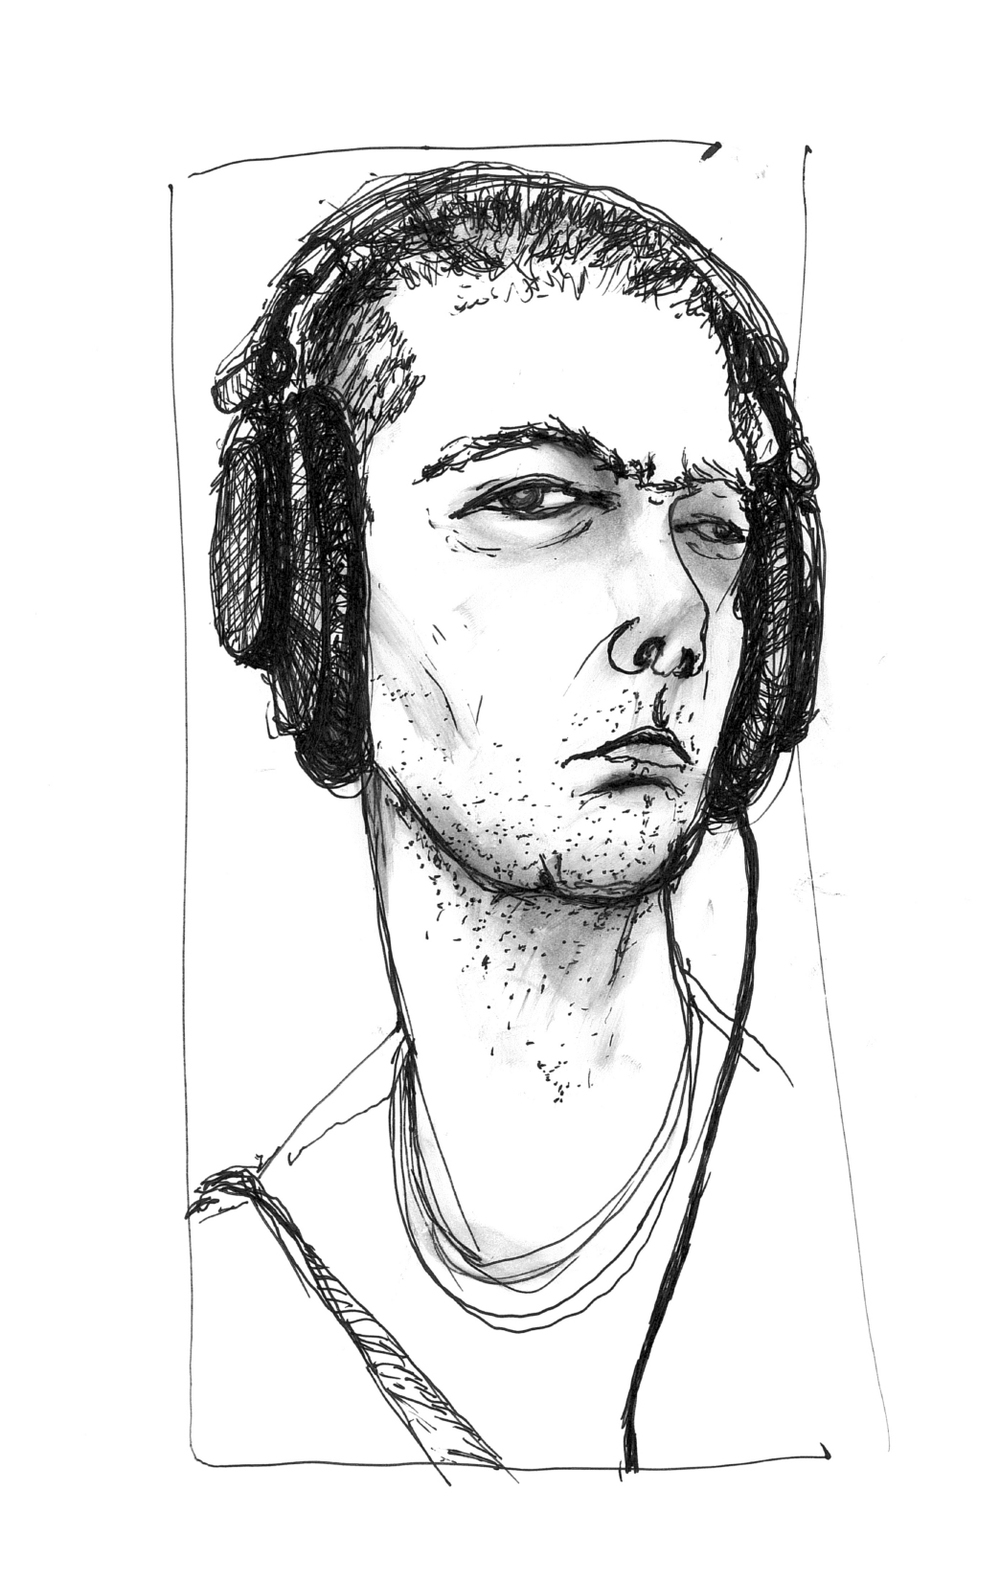 Headphones_white.jpg